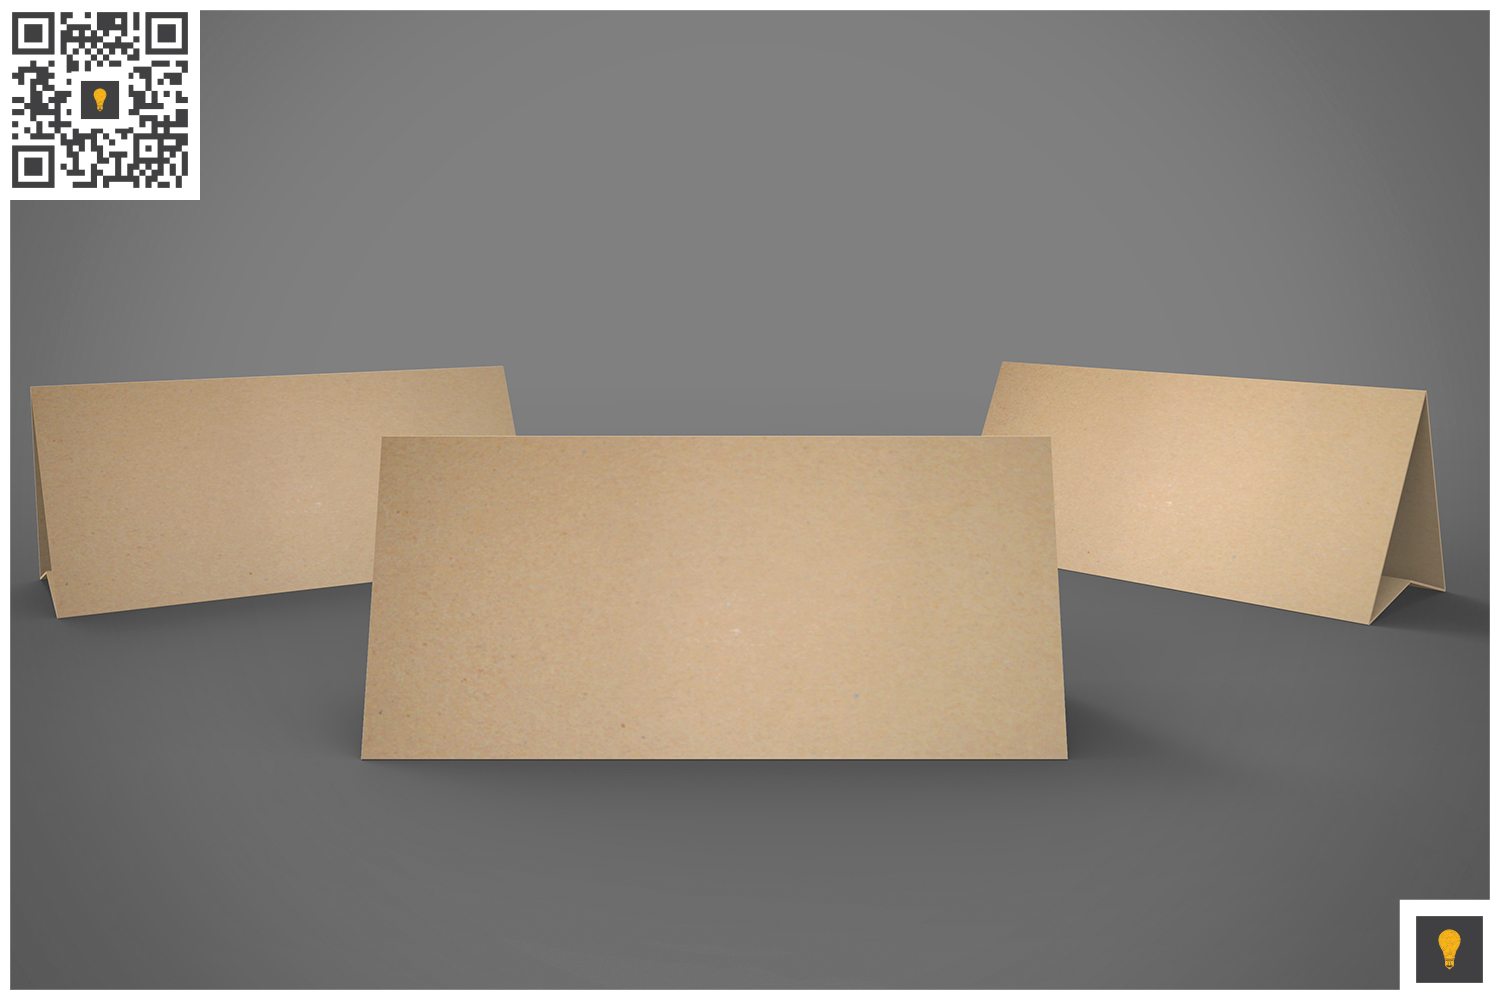 Table Tent 3D Render example image 12